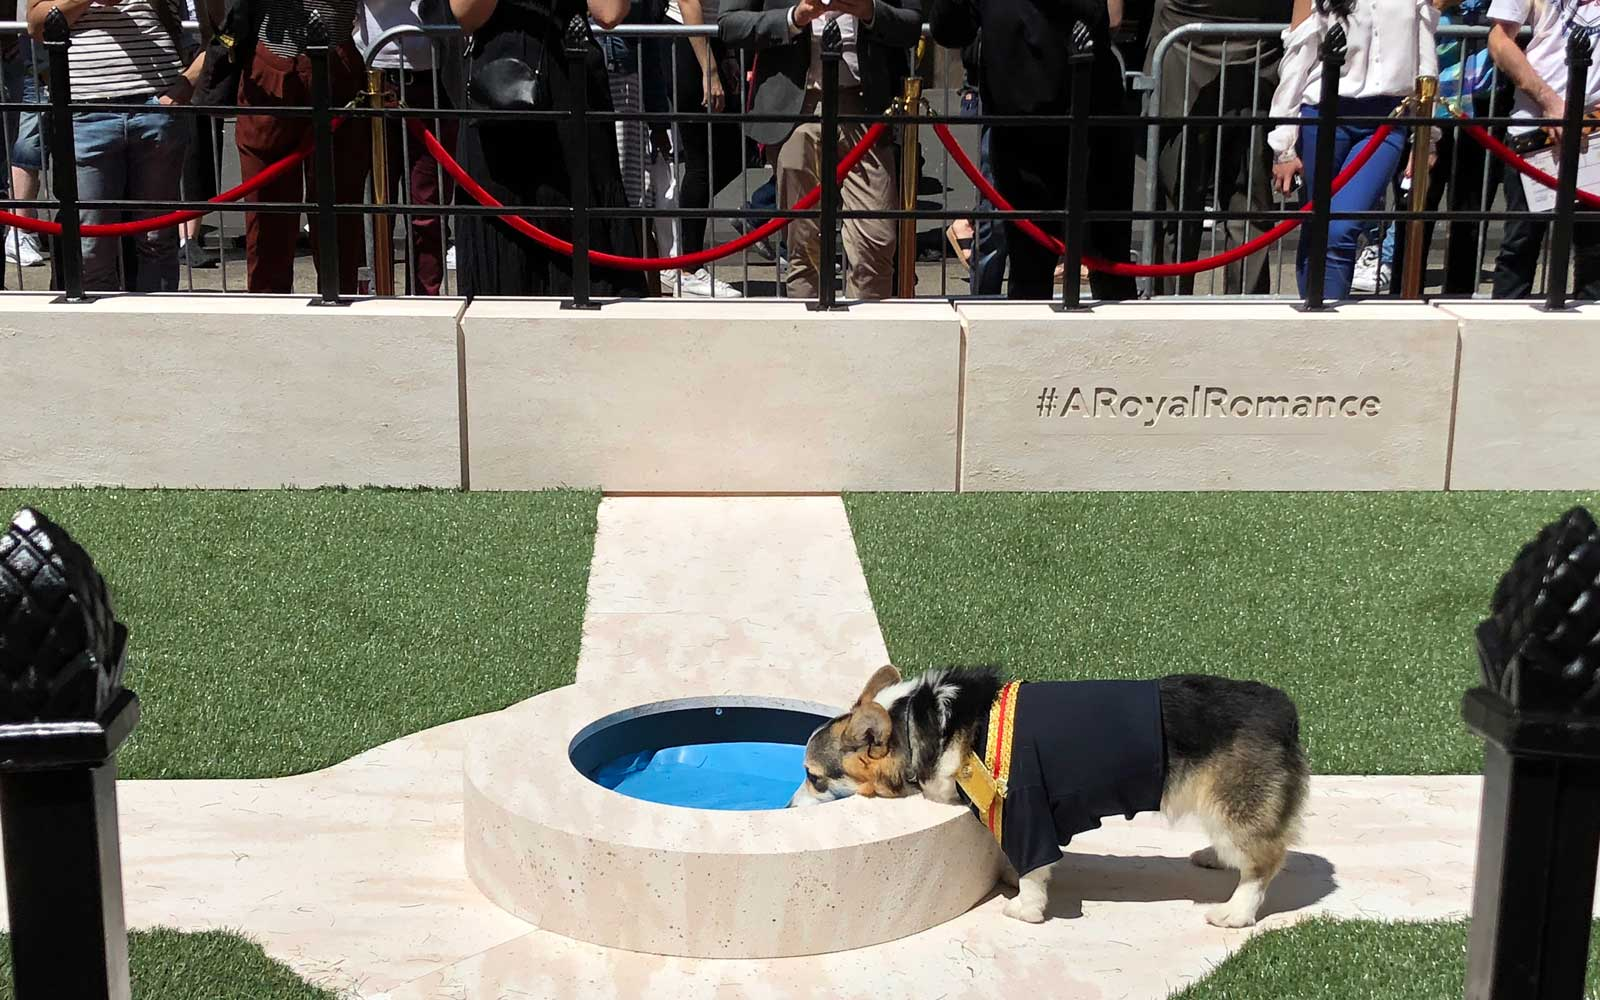 A thirsty Prince Harry laps at water from the fountain.